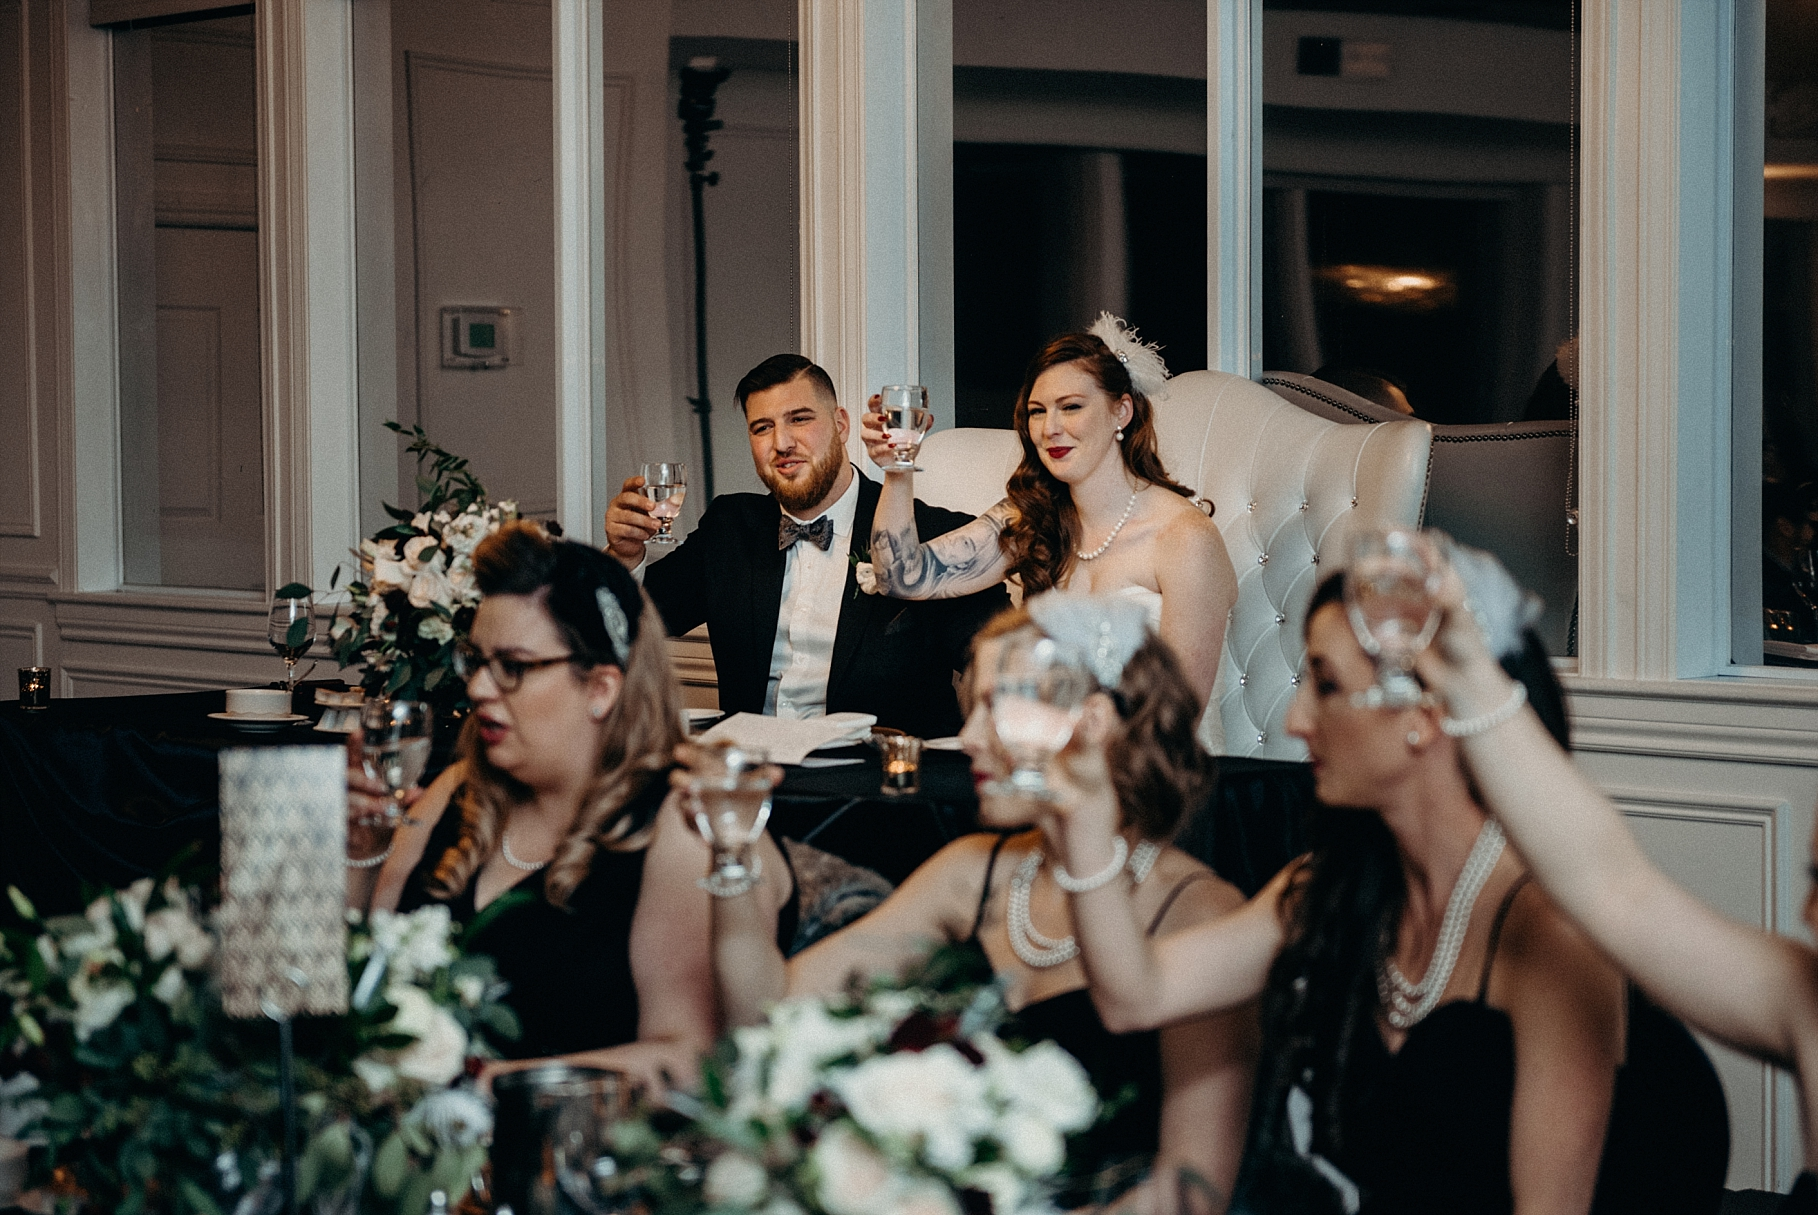 Orchard View Wedding by Mocha Tree Studios Ottawa Wedding and Engagement Photographer and Videographer Dark Moody Intimate Authentic Modern Romantic Cinematic Best Candid 24